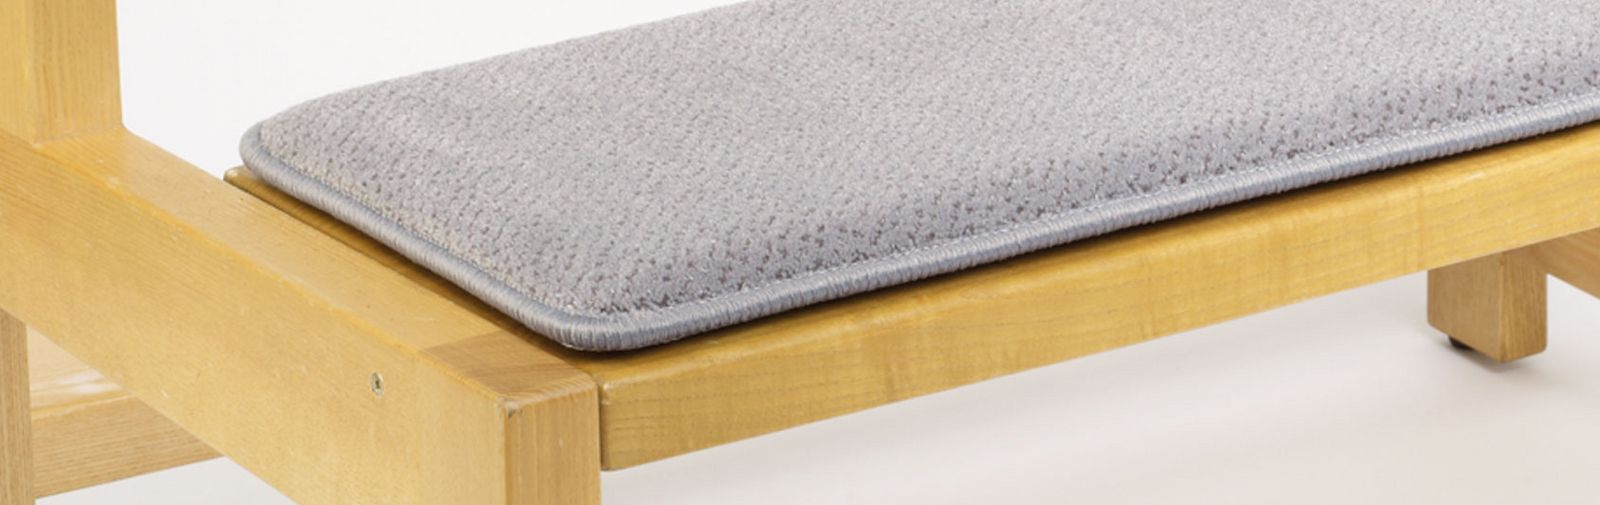 Sample bank Pew Runner Samtplush Color code 2683 Color gray